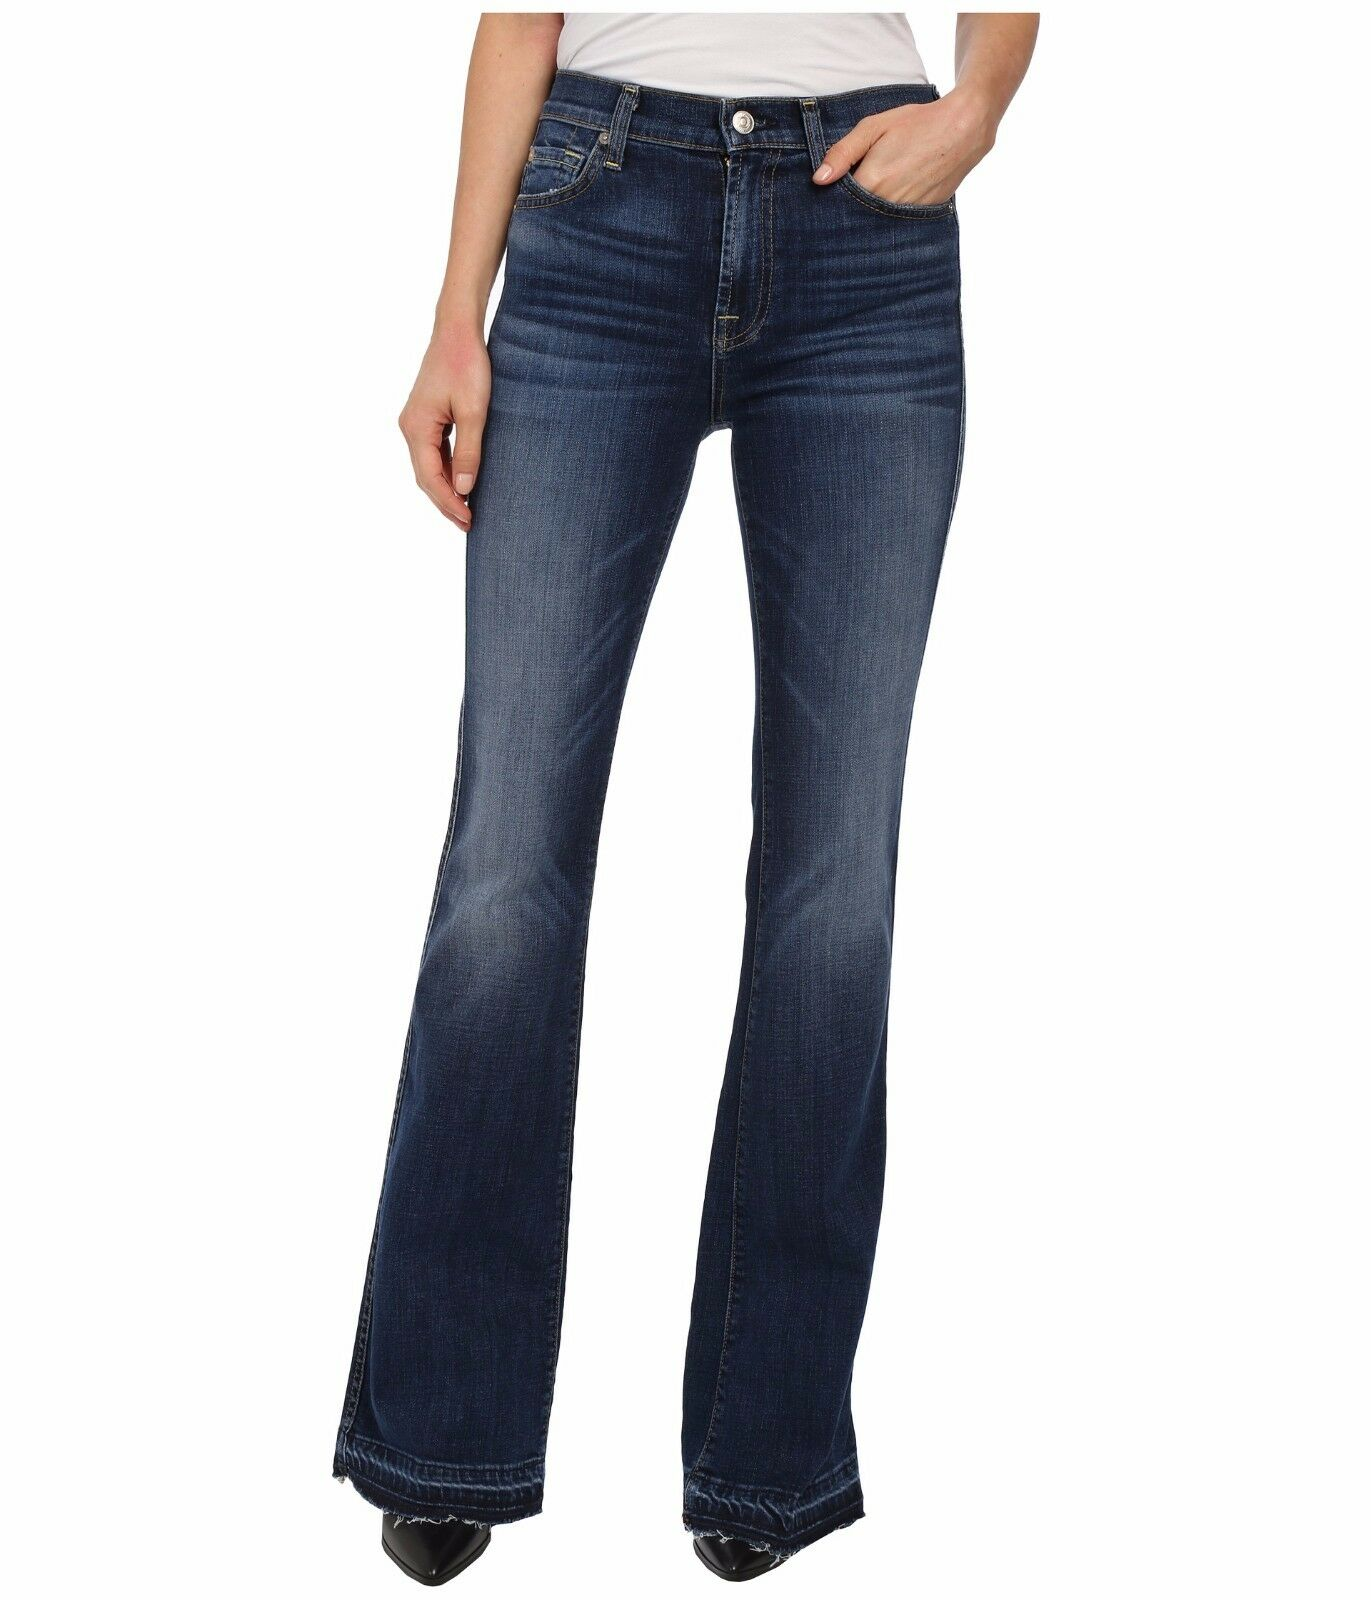 NWT SEVEN FOR ALL MANKIND SZ 1 SZ 24 HIGH WAIST VINTAGE  FLARE BOOTCUT JEANS